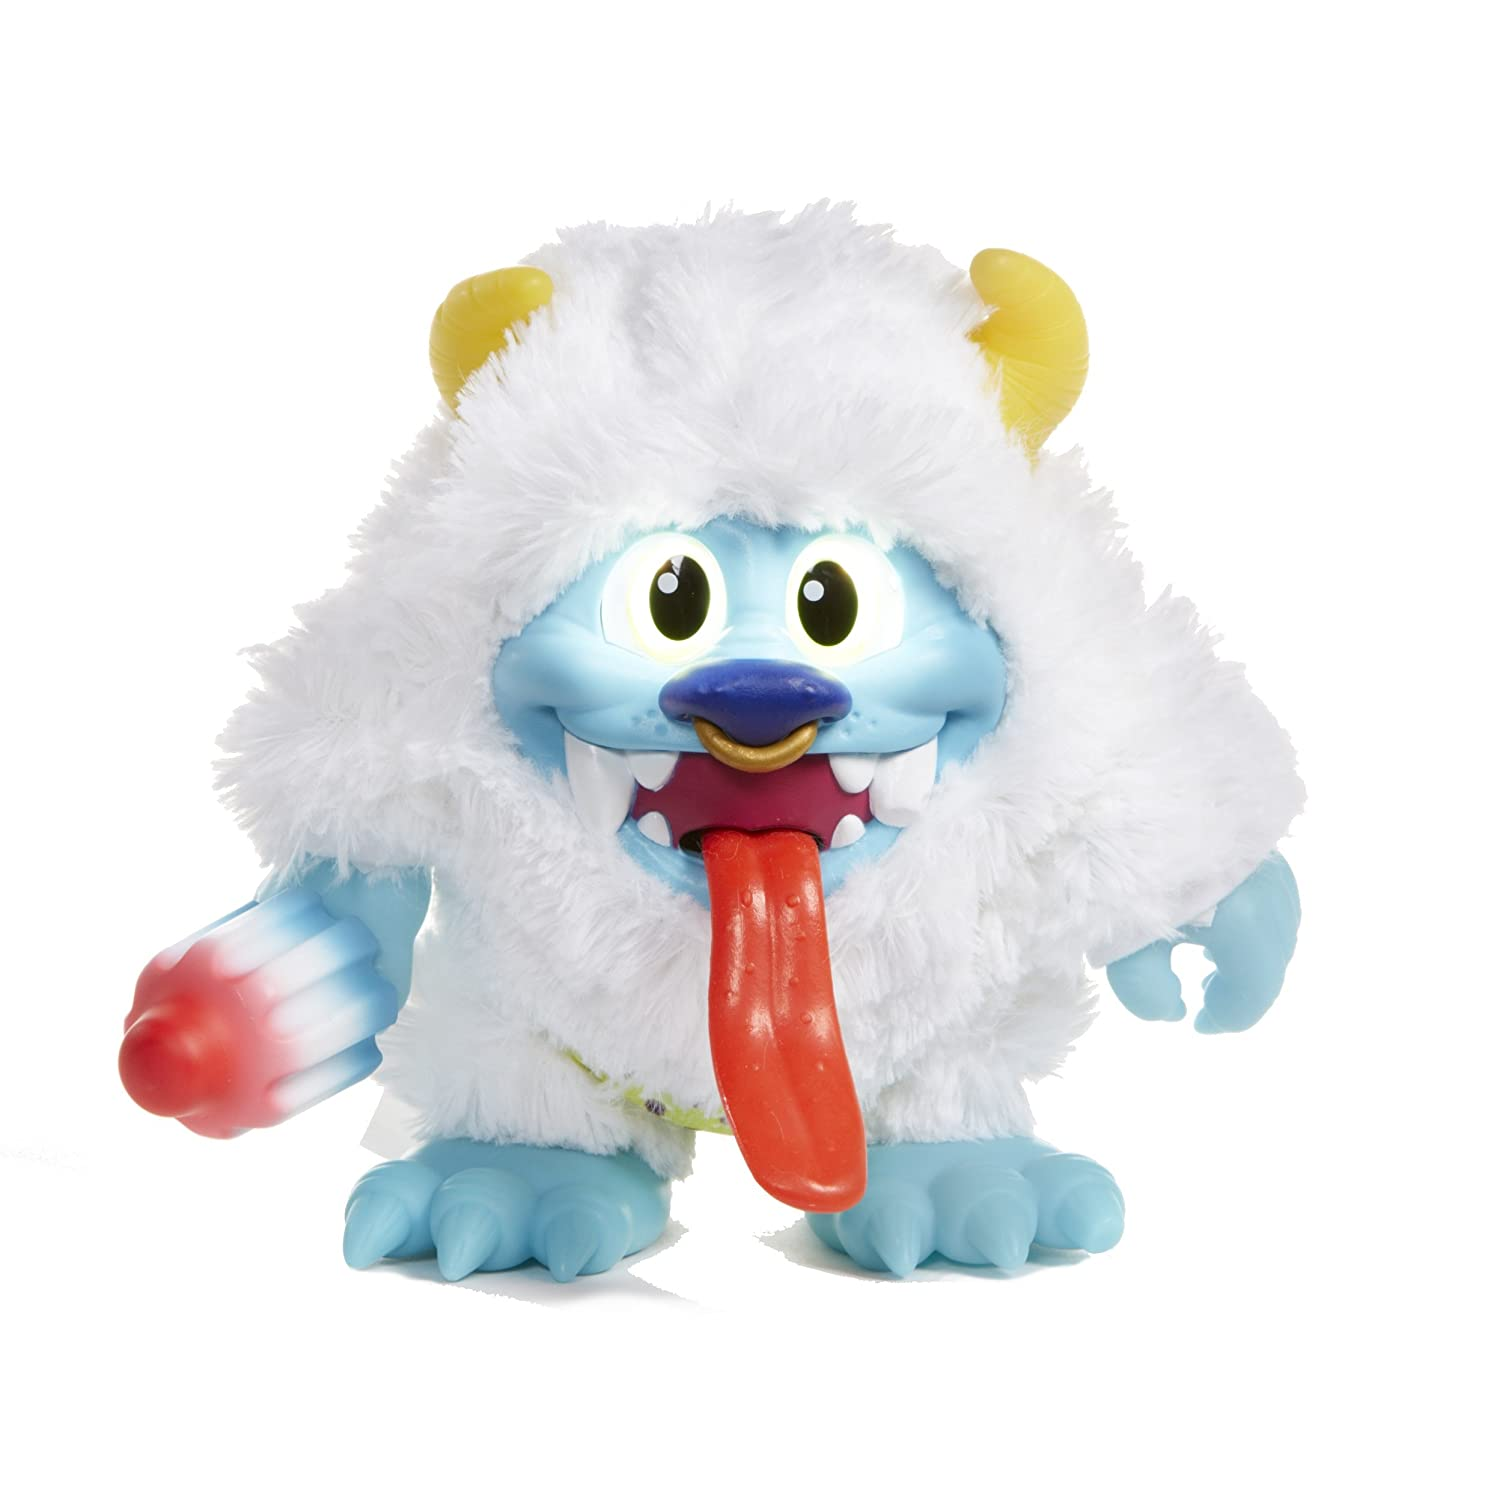 Crate Creatures Surprise! - Blizz MGA Entertainment 549246